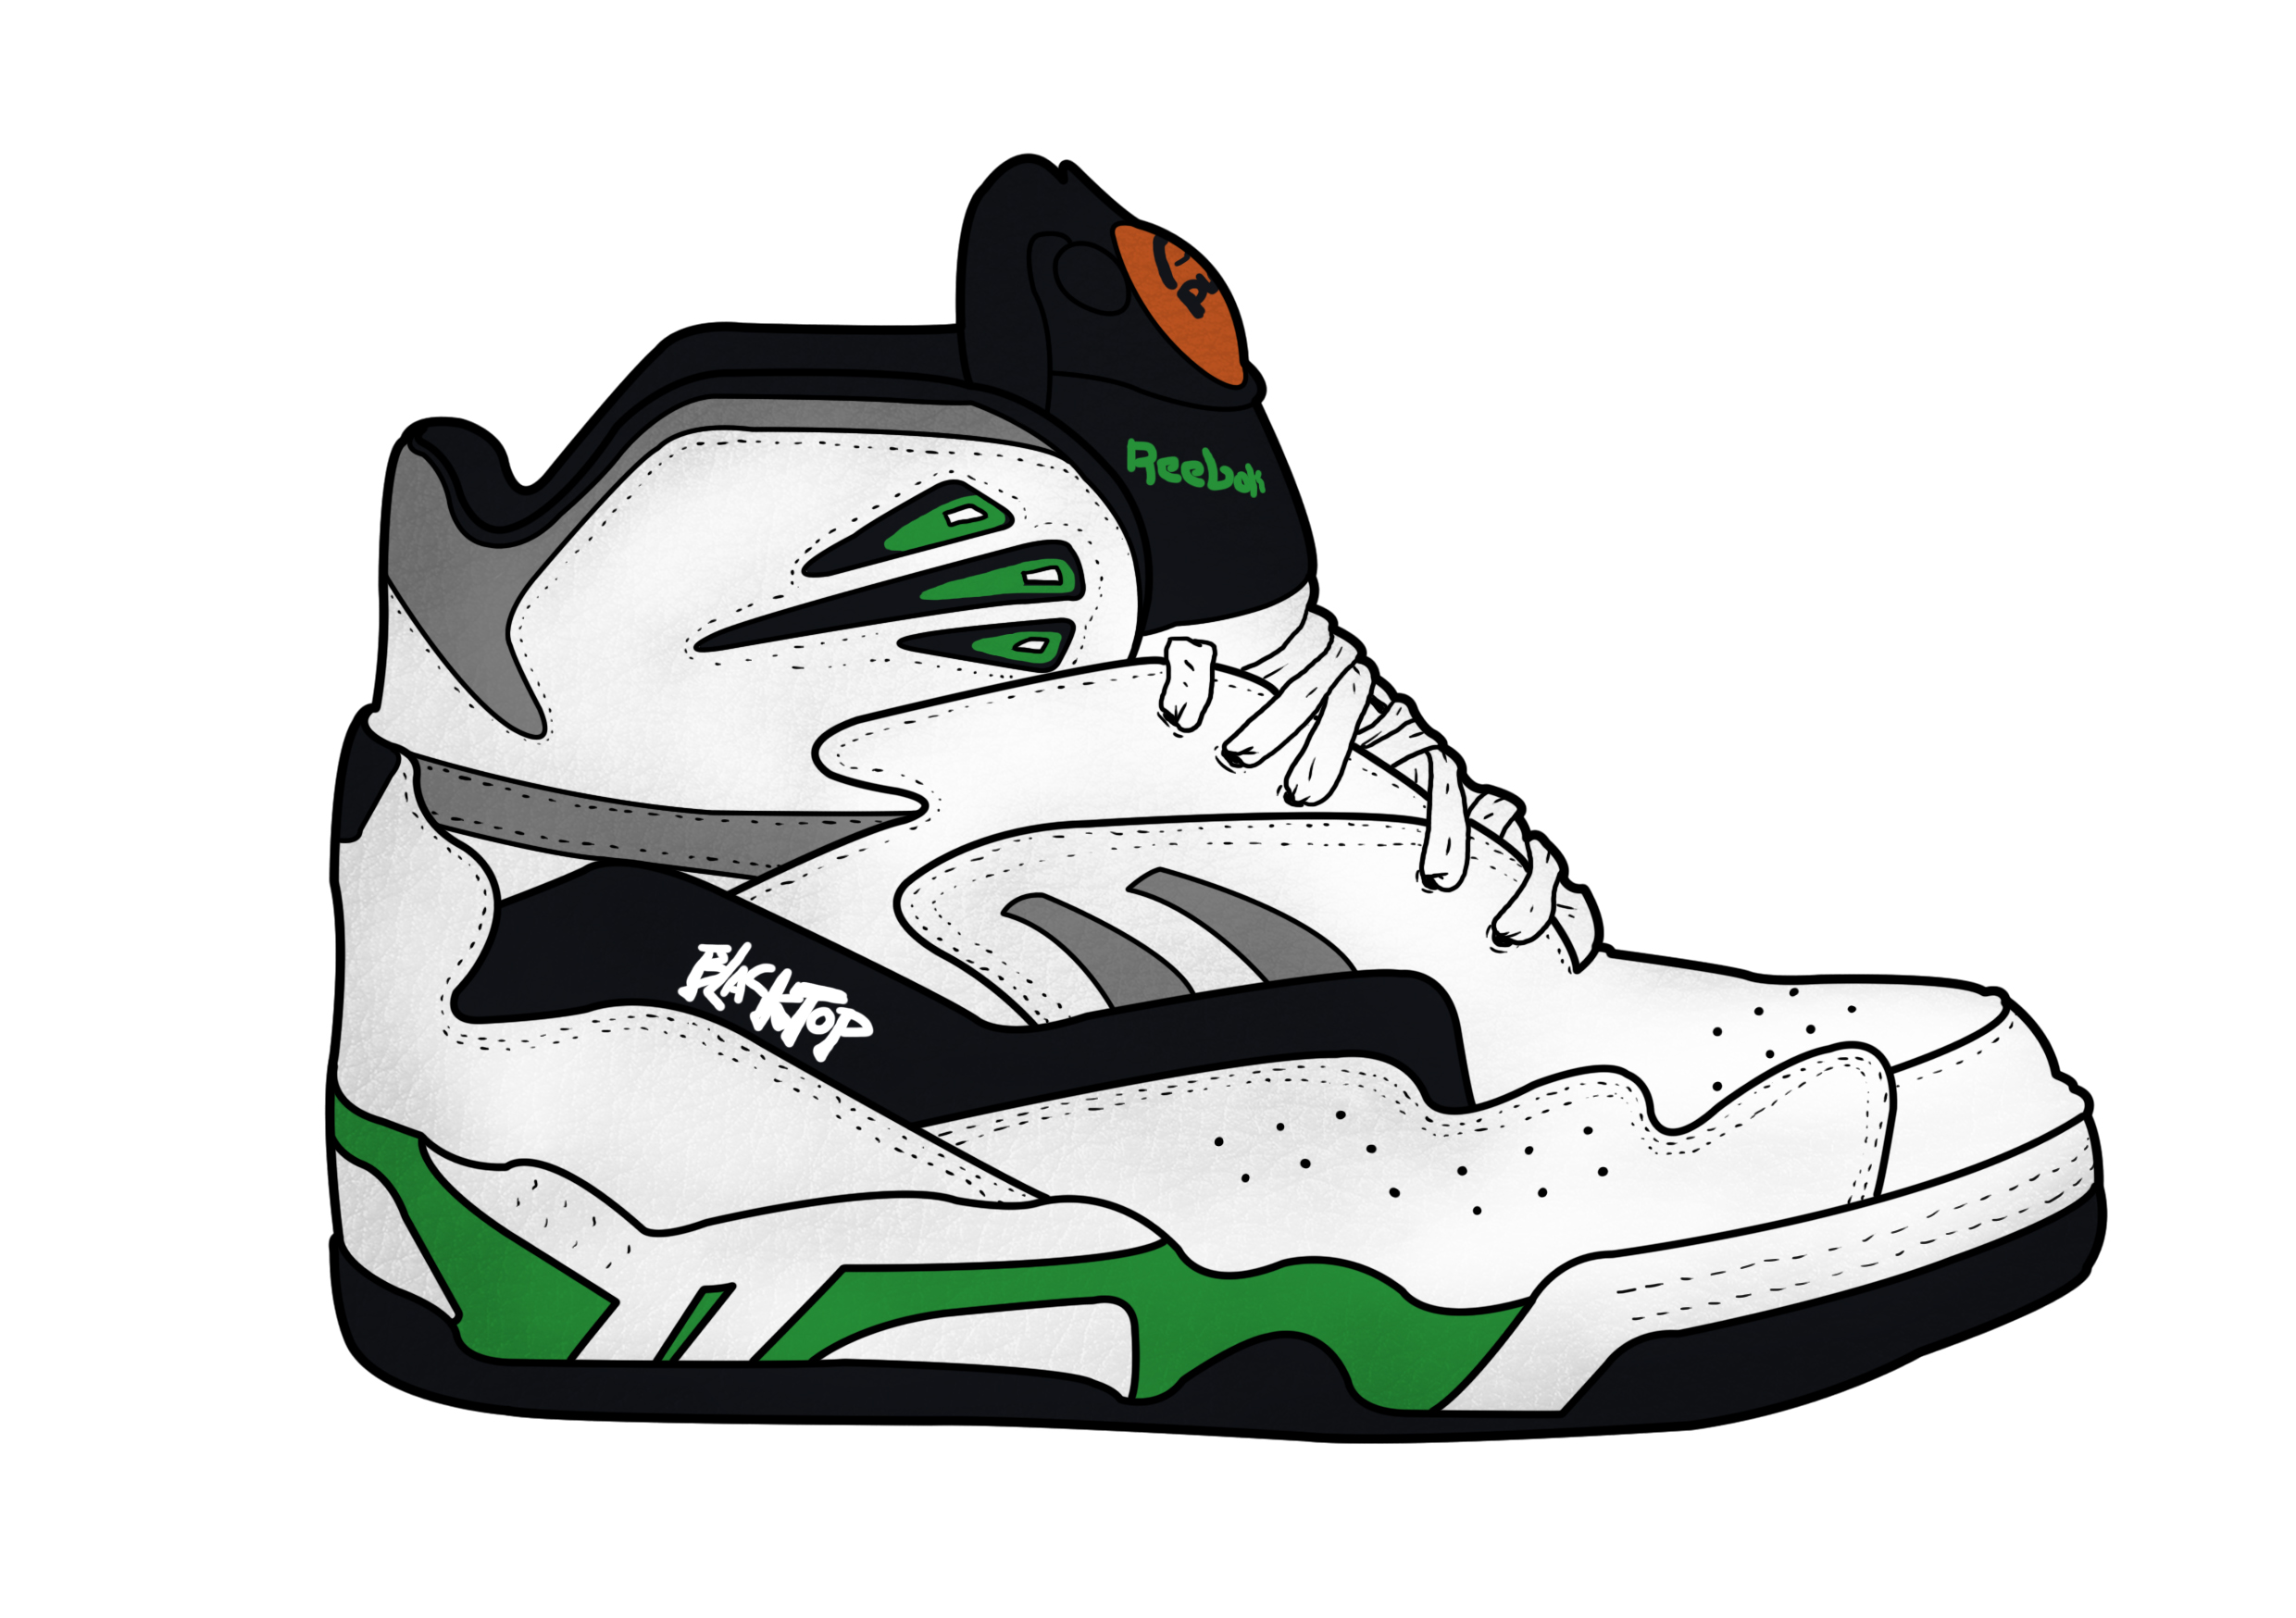 25 ANS DE LA PUMP: REEBOK BLACKTOP BATTLEGROUND